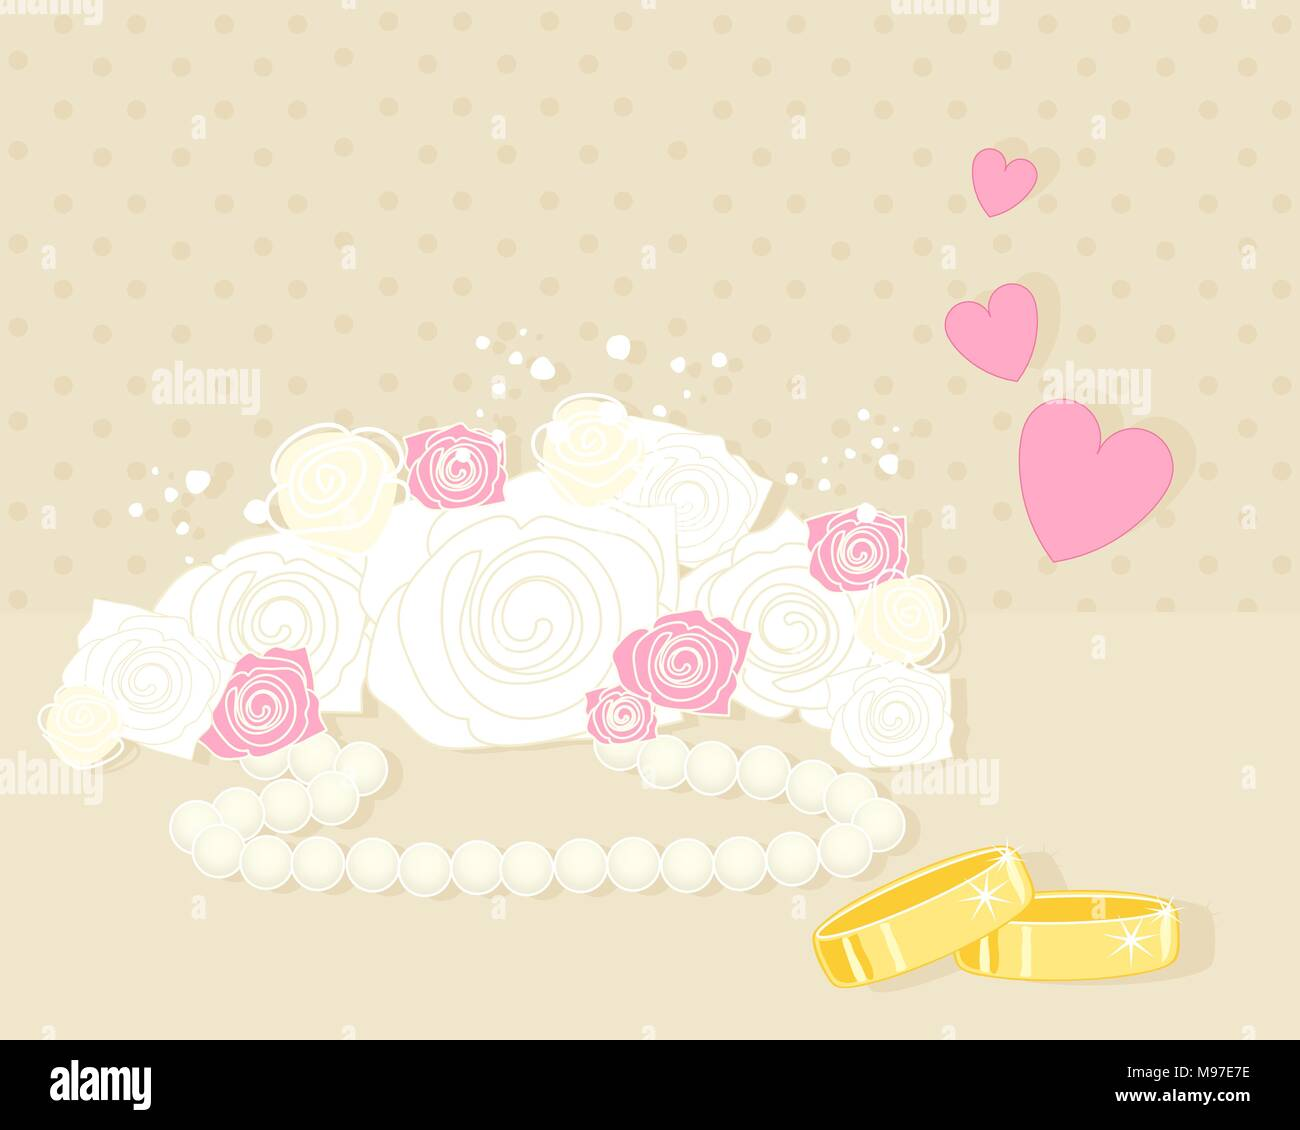 An Illustration Of An Anniversary Greeting Card With White And Pink